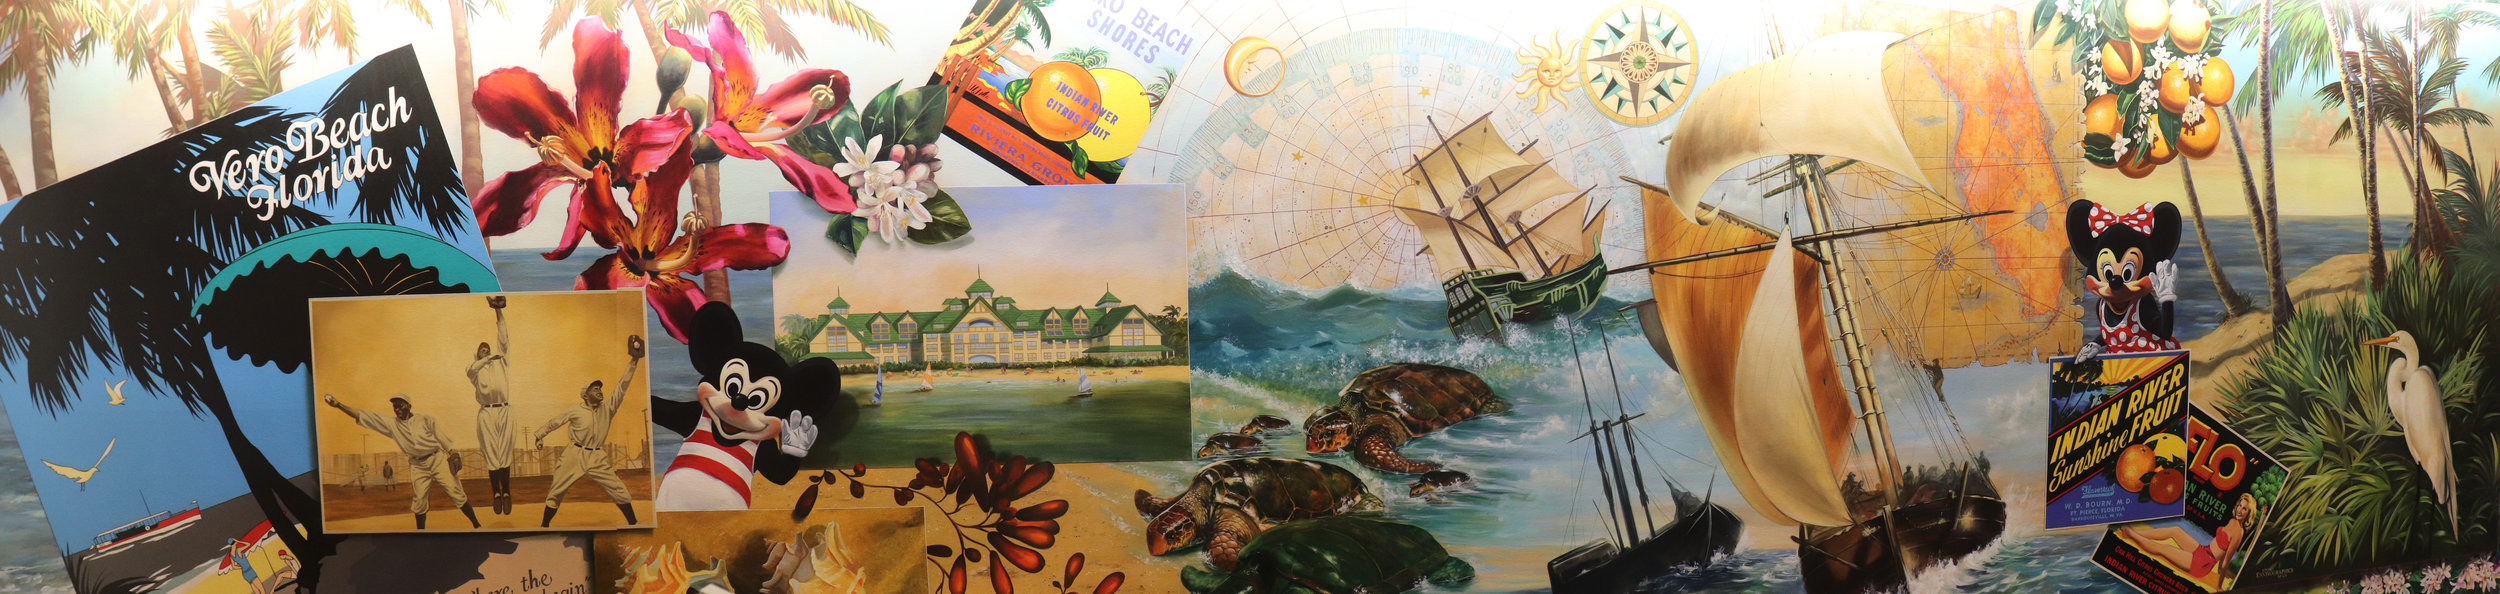 A fun vintage mural decorates the check-in area.